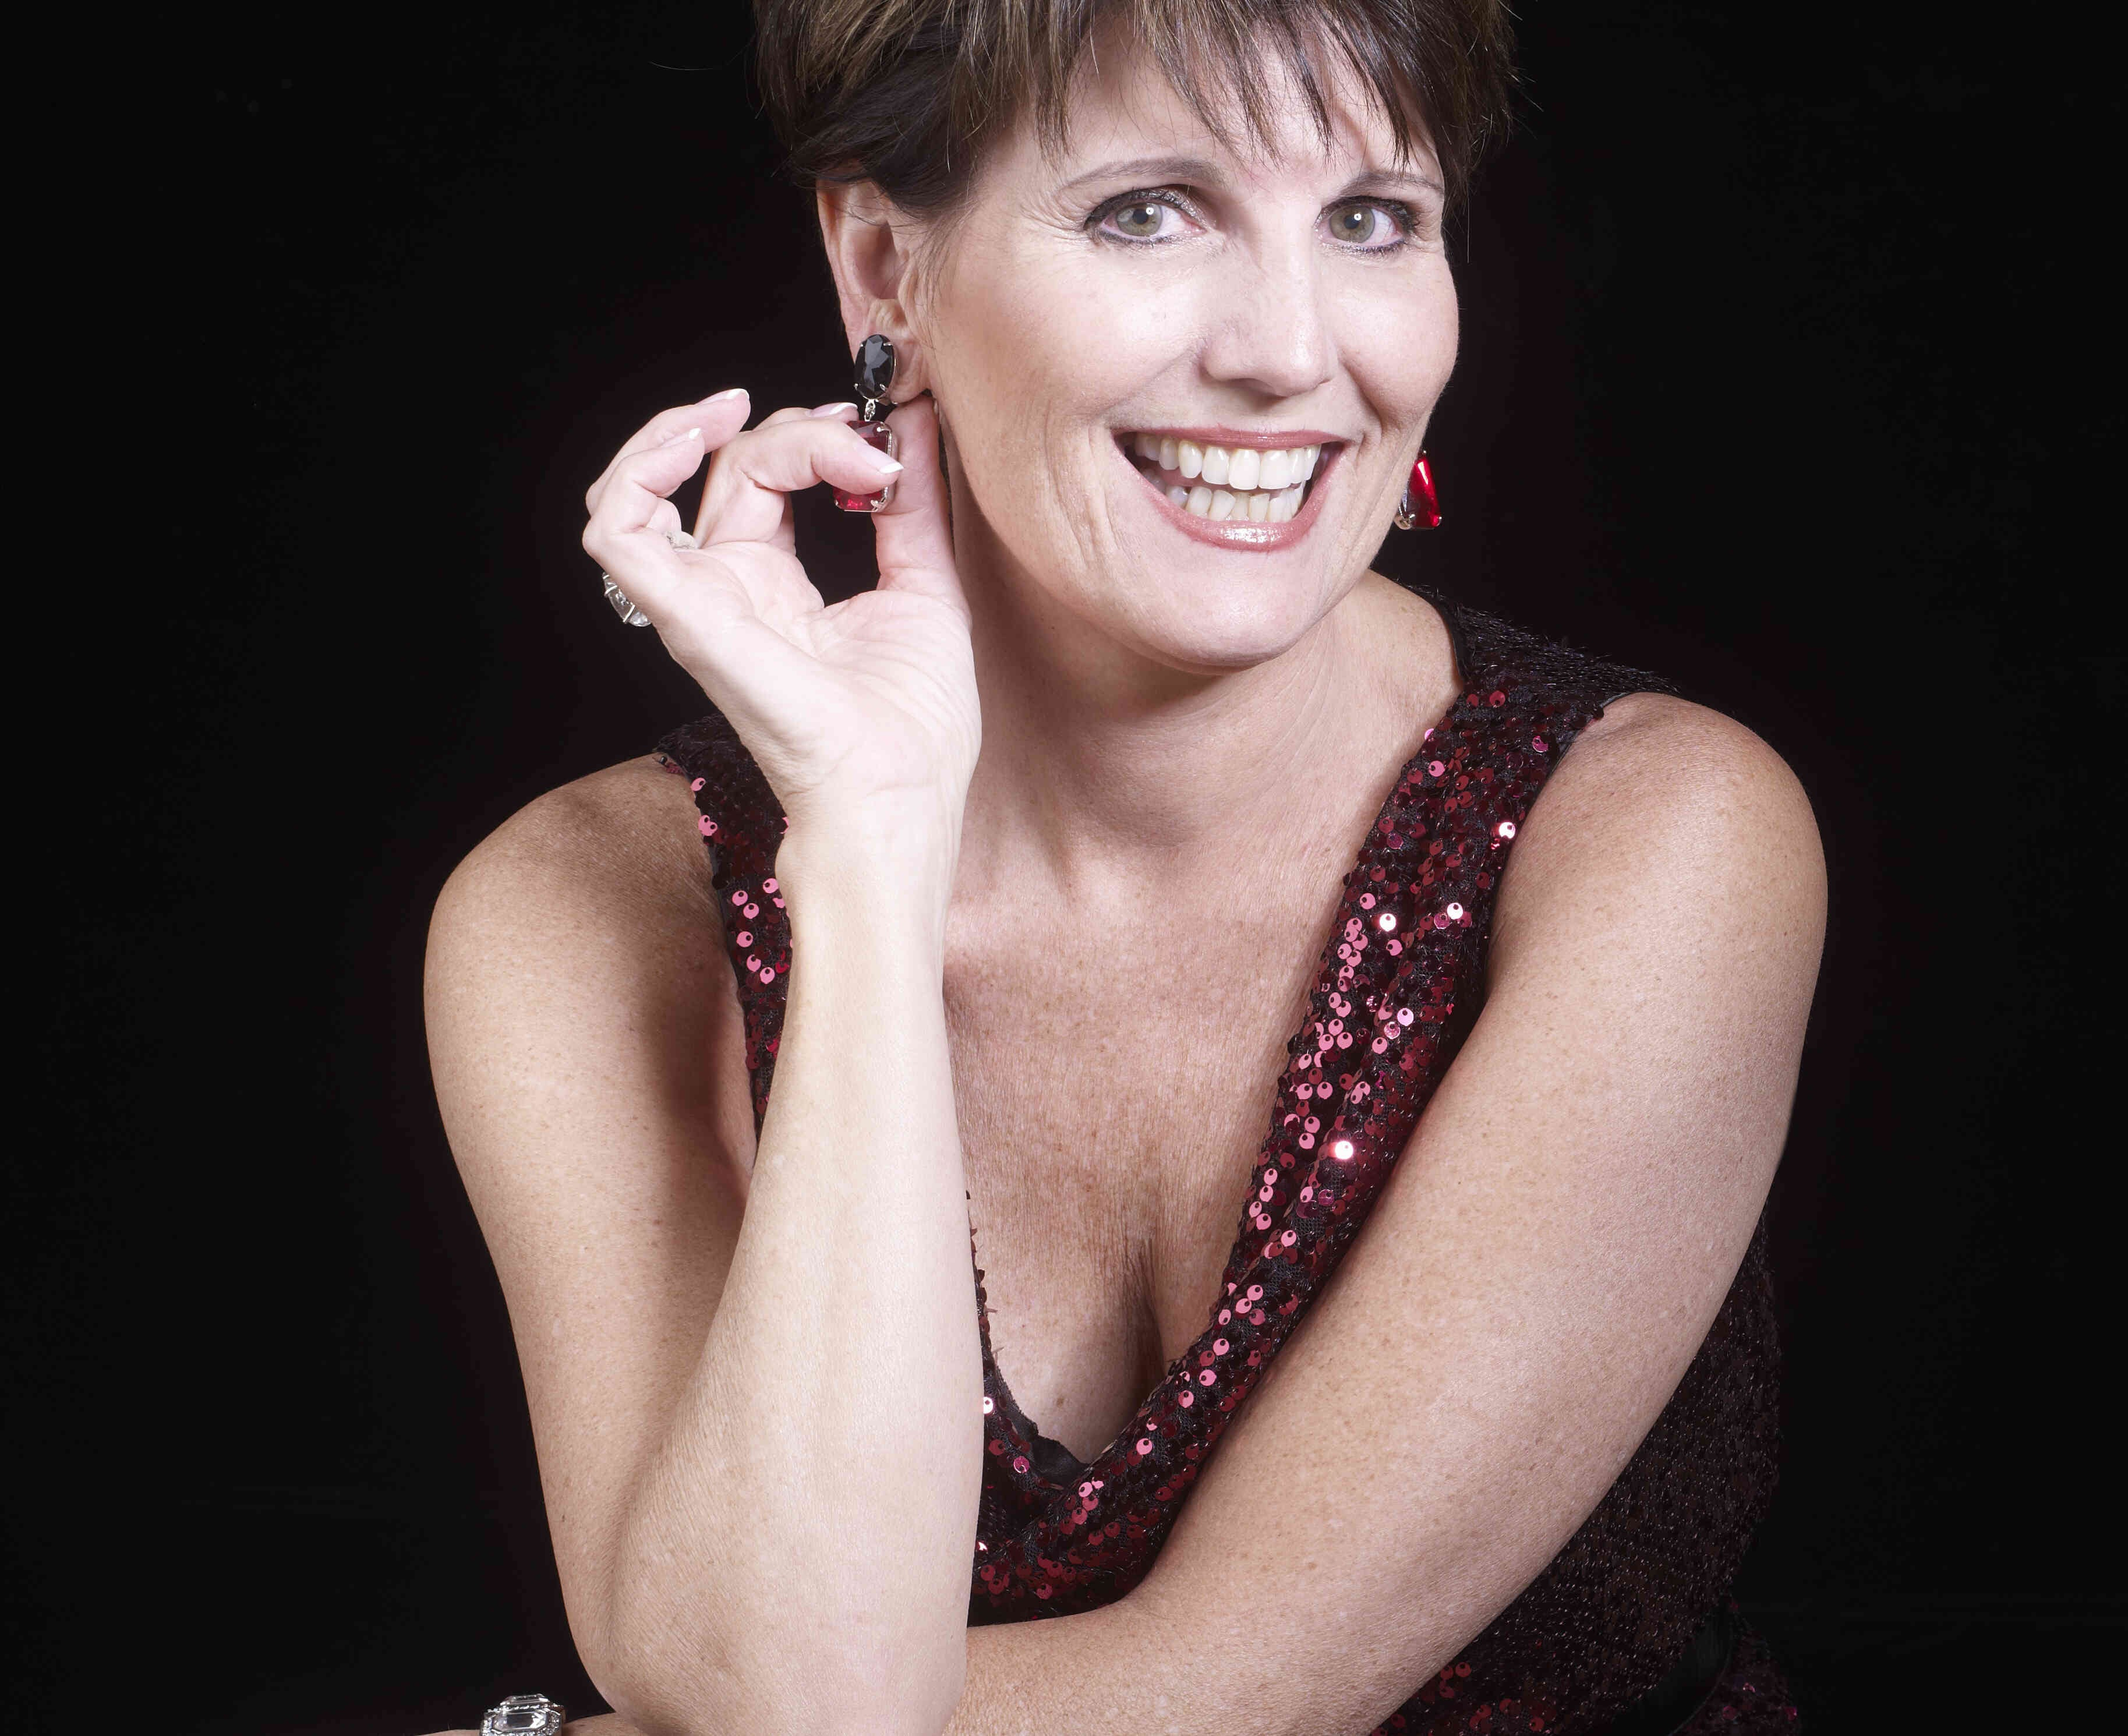 lucie arnaz latin rootslucie arnaz age, lucie arnaz young, lucie arnaz today, lucie arnaz net worth, lucie arnaz 2016, lucie arnaz net worth 2016, lucie arnaz 2017, lucie arnaz latin roots, lucie arnaz show, lucie arnaz imdb, lucie arnaz twitter, lucie arnaz palm springs, lucie arnaz birthday, lucie arnaz family, lucie arnaz child, lucie arnaz parents, lucie arnaz facebook, lucie arnaz biography, lucie arnaz brother, lucie arnaz interview